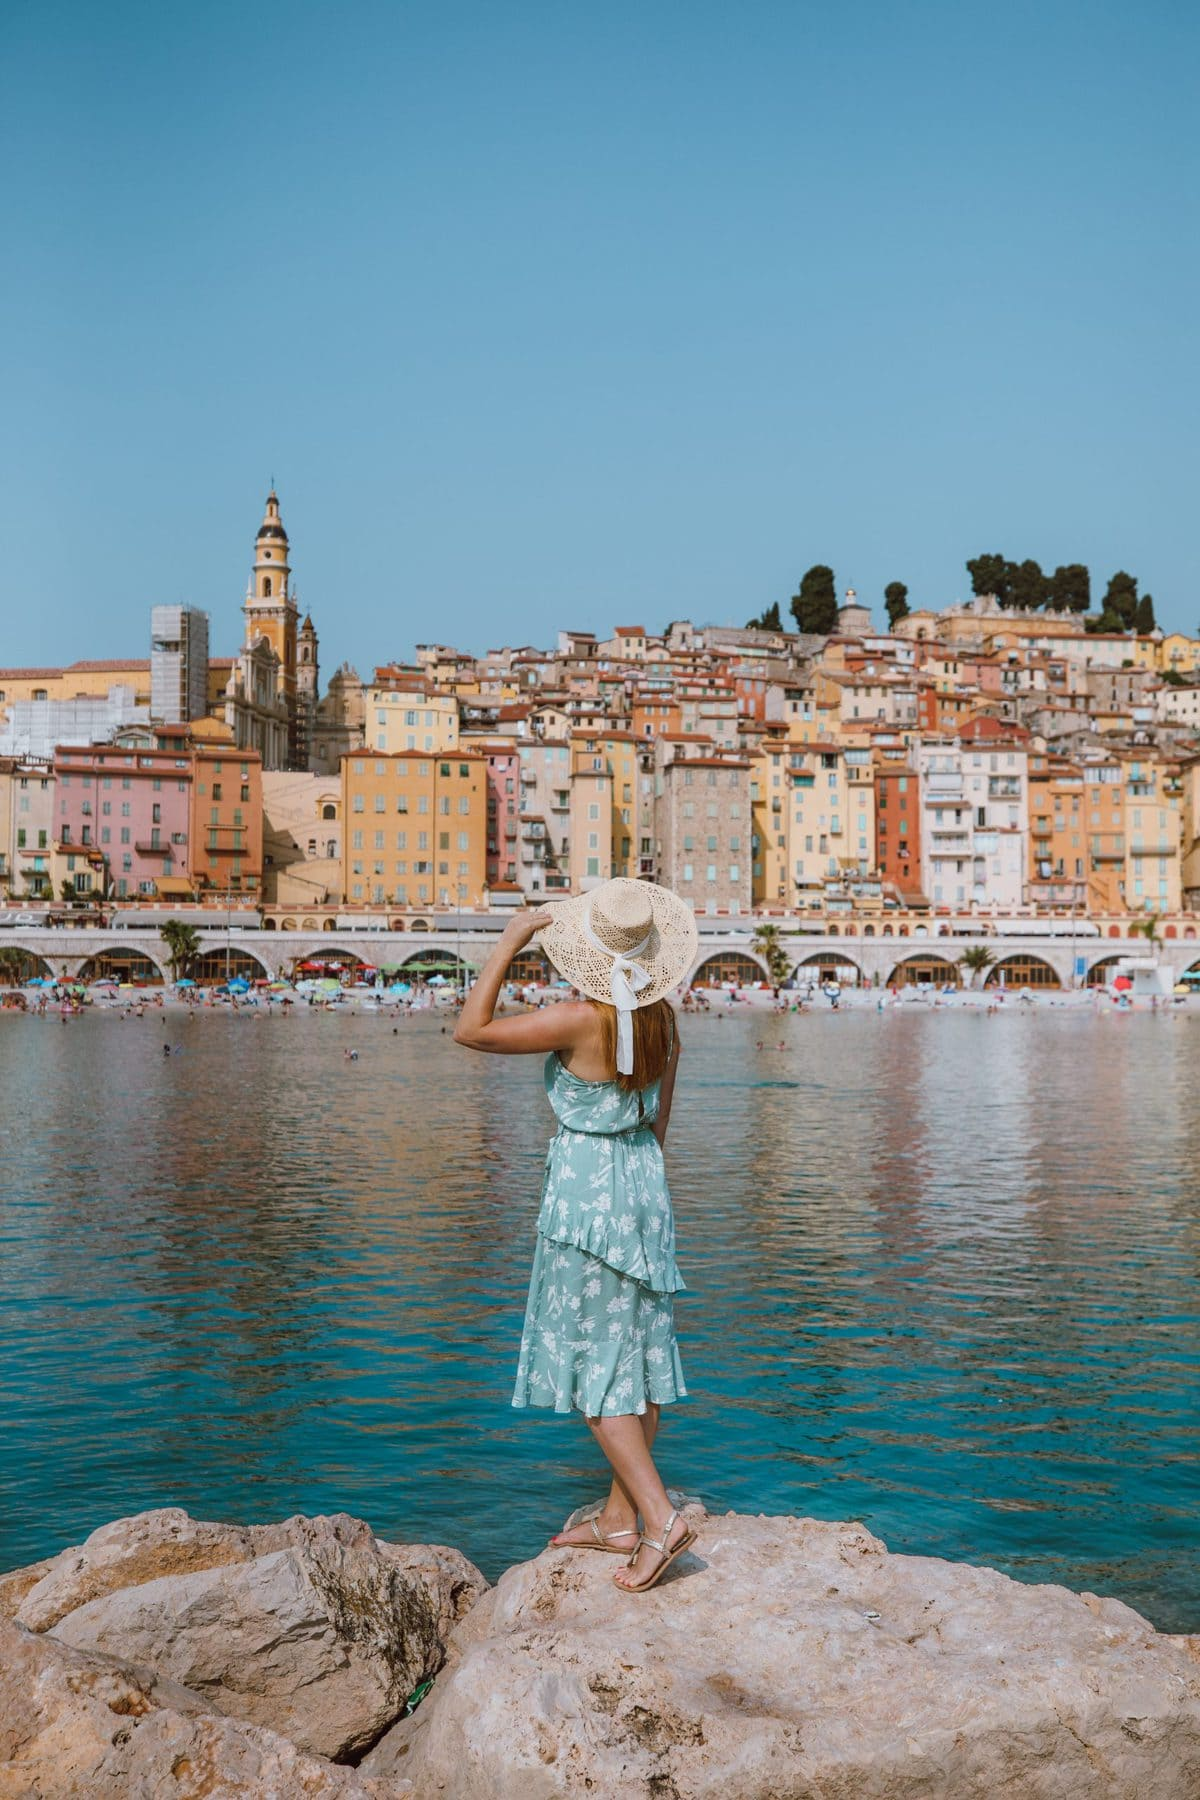 A woman in a blue dress and sunhat facing towards the colorful layers of houses across the water in Menton, France